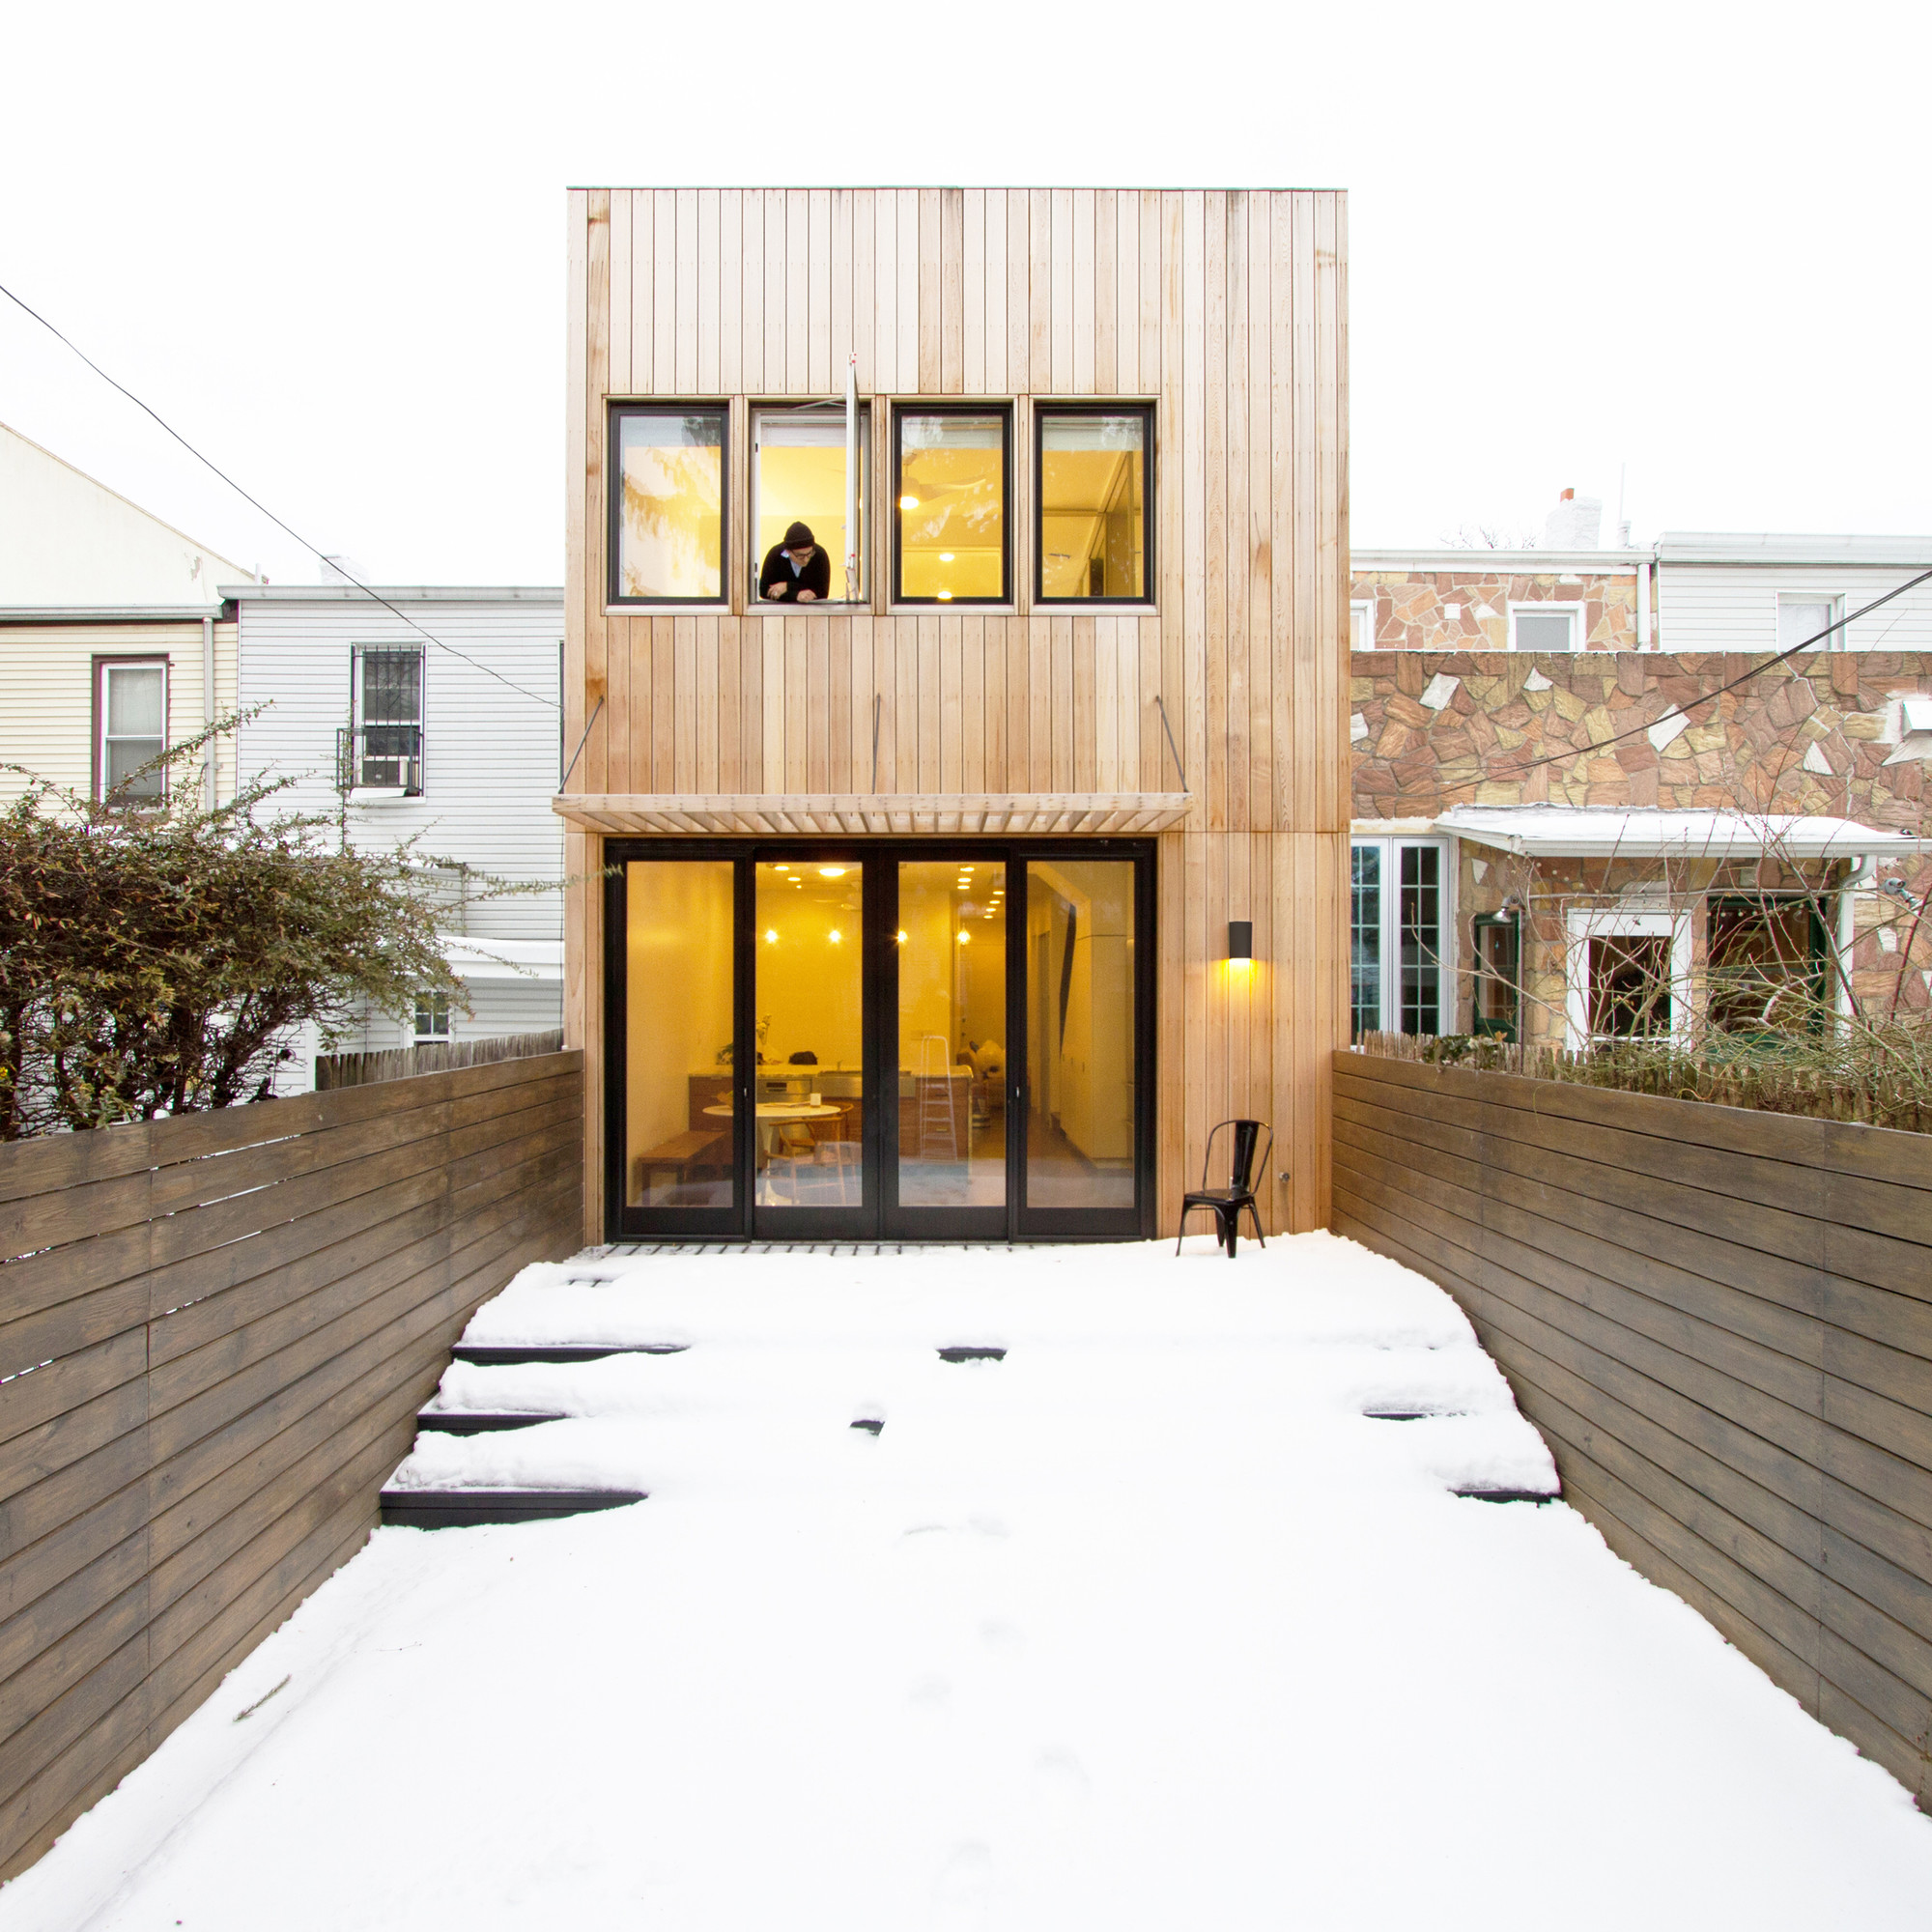 Brooklyn Row House / Office of Architecture, © Ben Anderson Photo